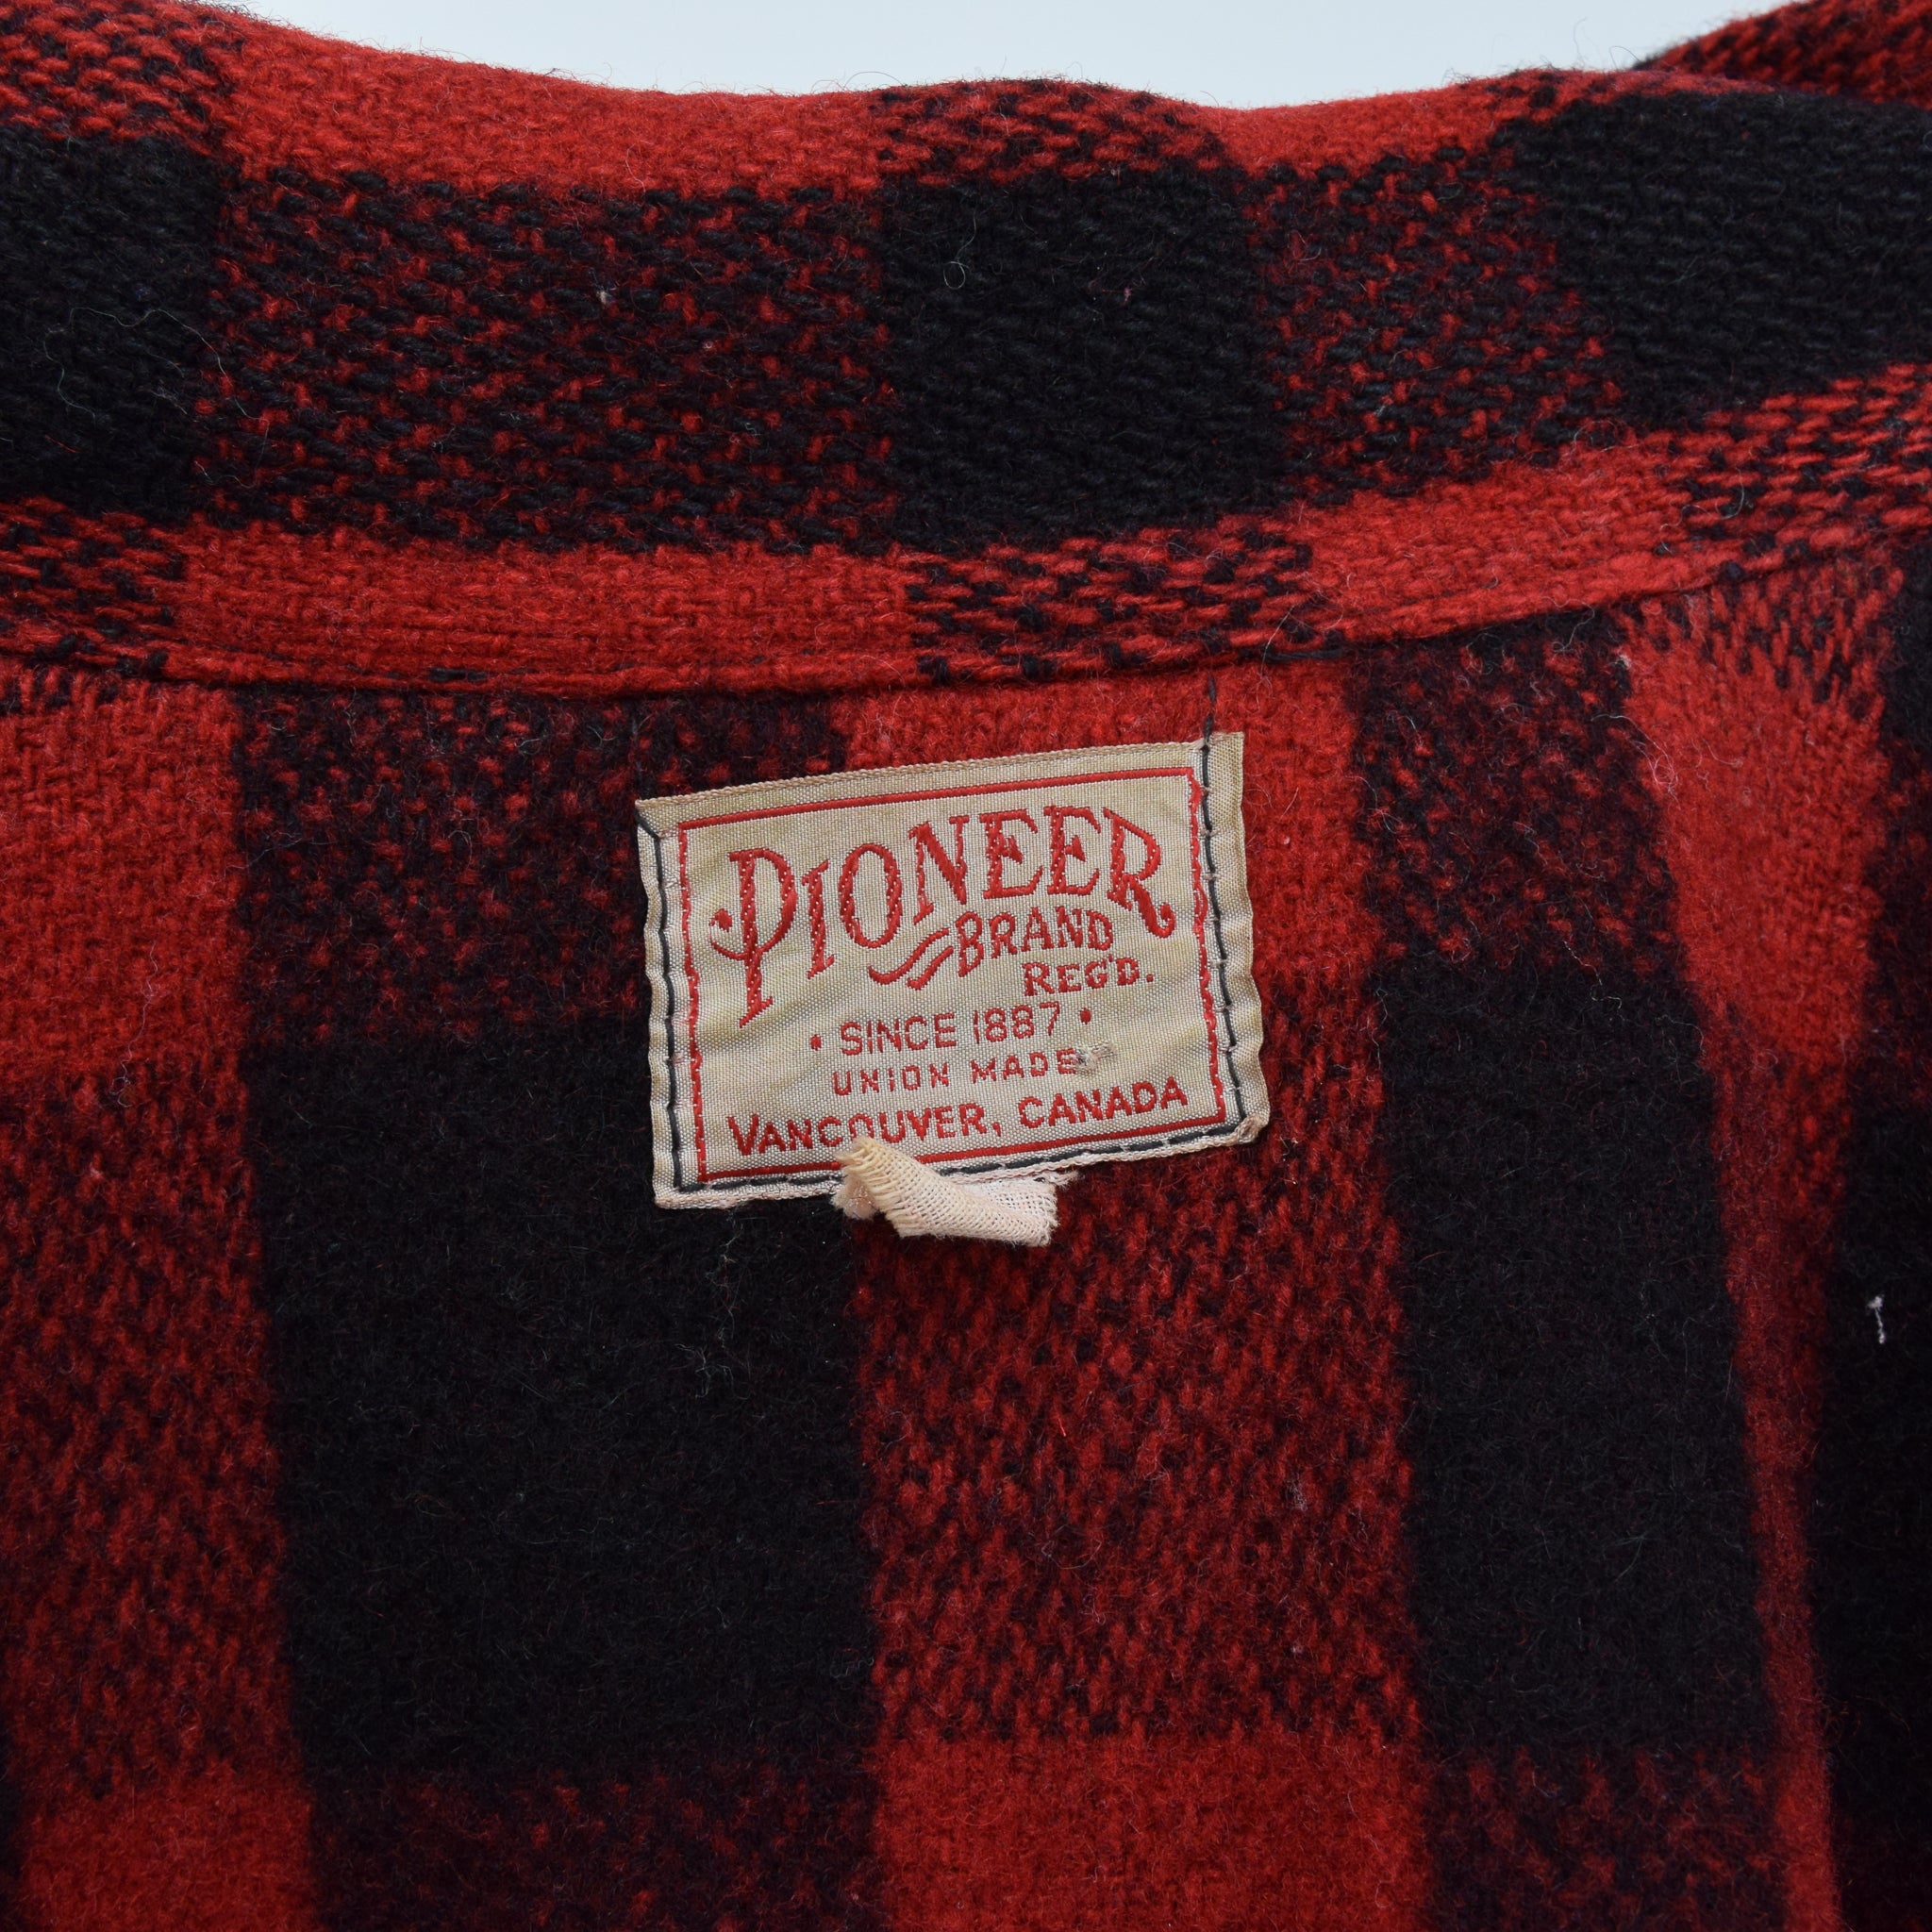 Vintage Pioneer Brand Canada Double Mackinaw Cruiser Hunting Jacket M / L label